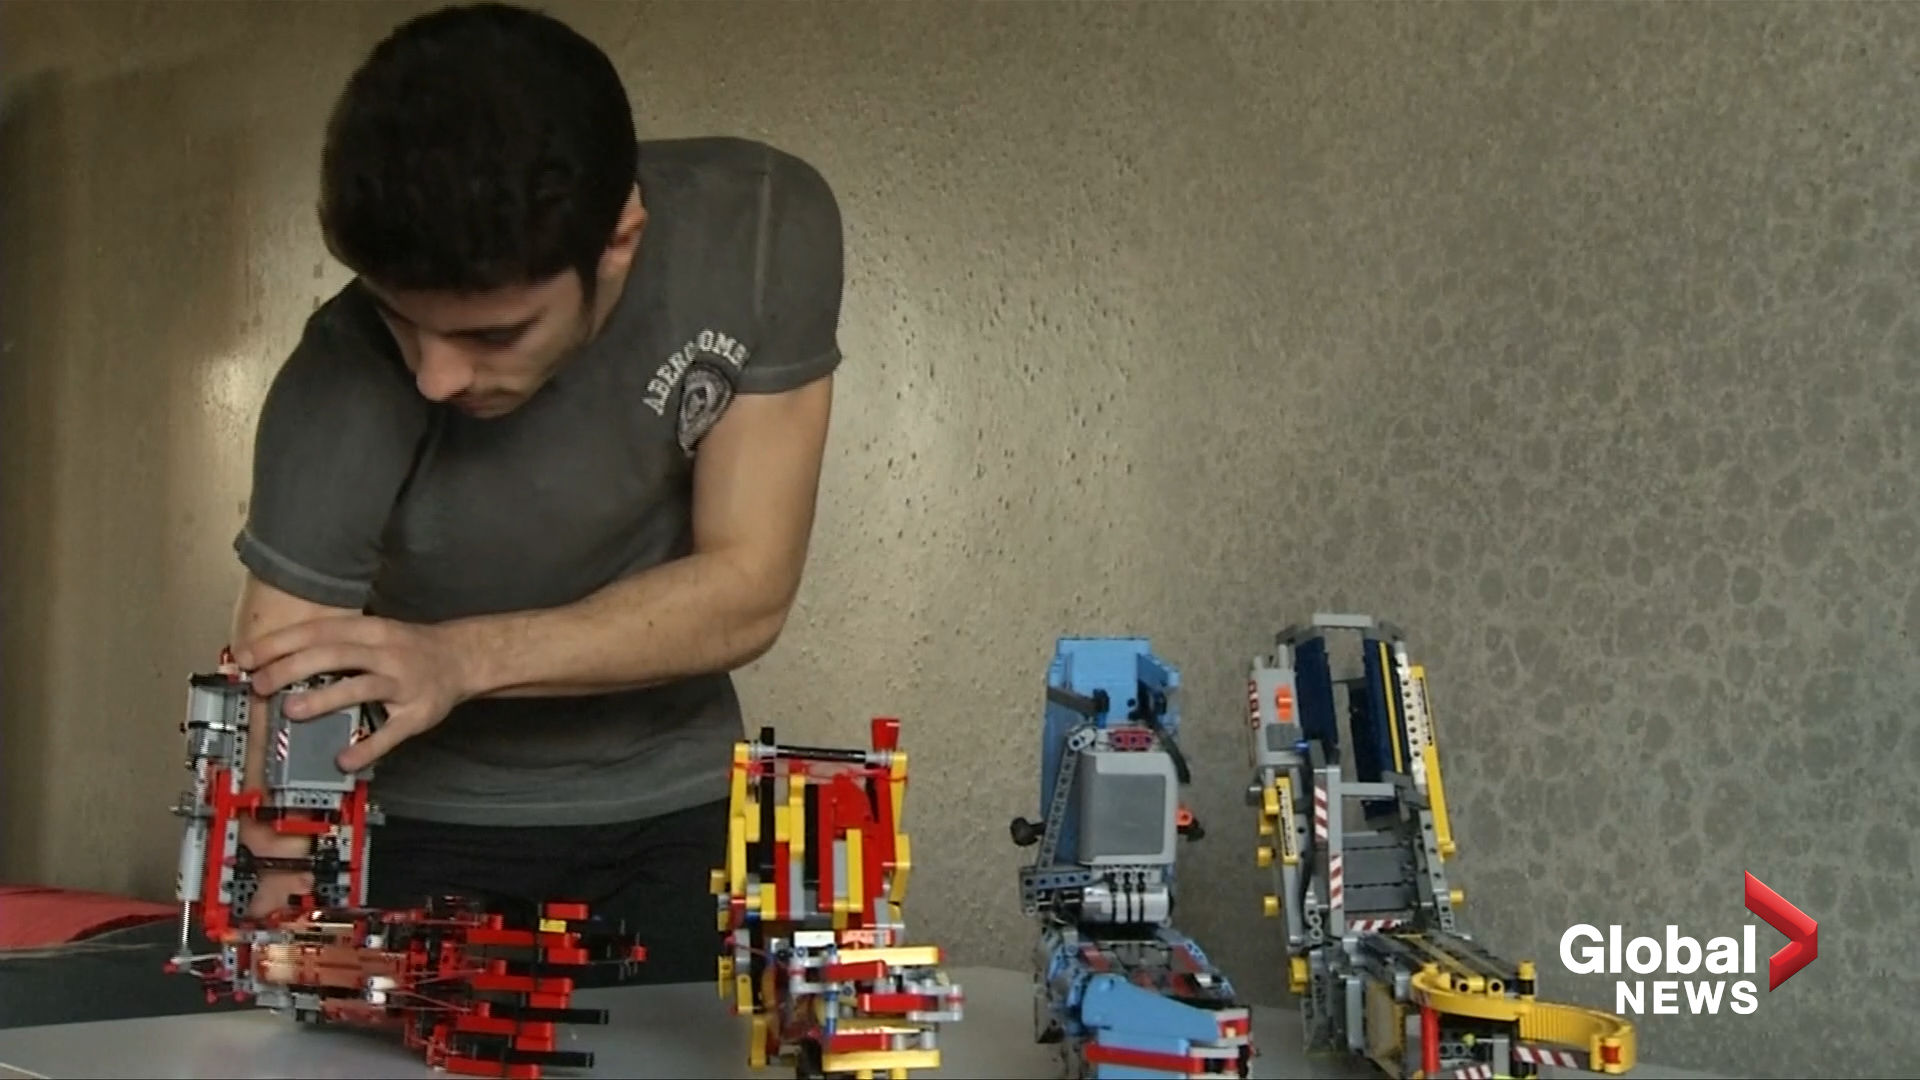 Brick by Lego brick, teen builds own prosthetic arm